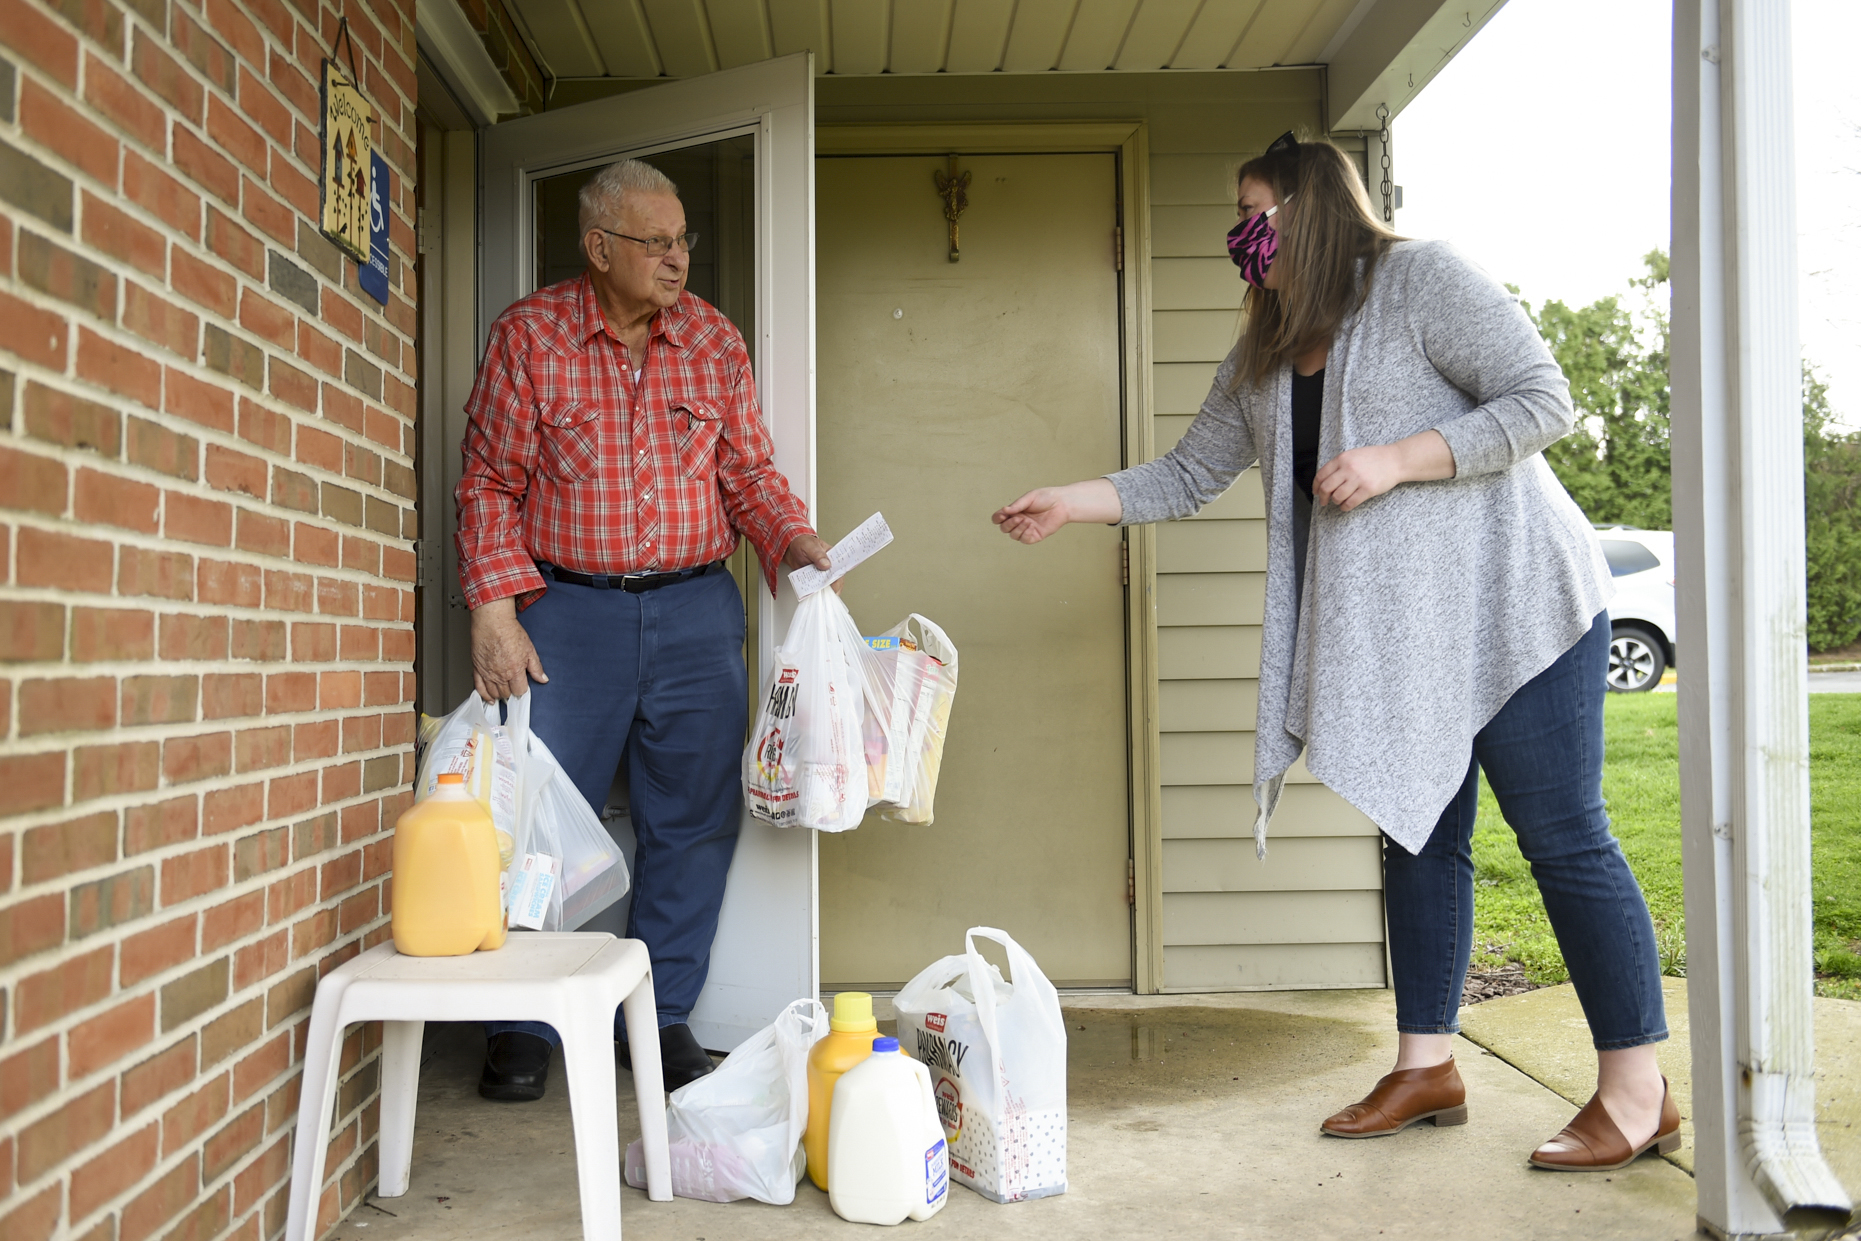 A woman delivers groceries to an elderly man.